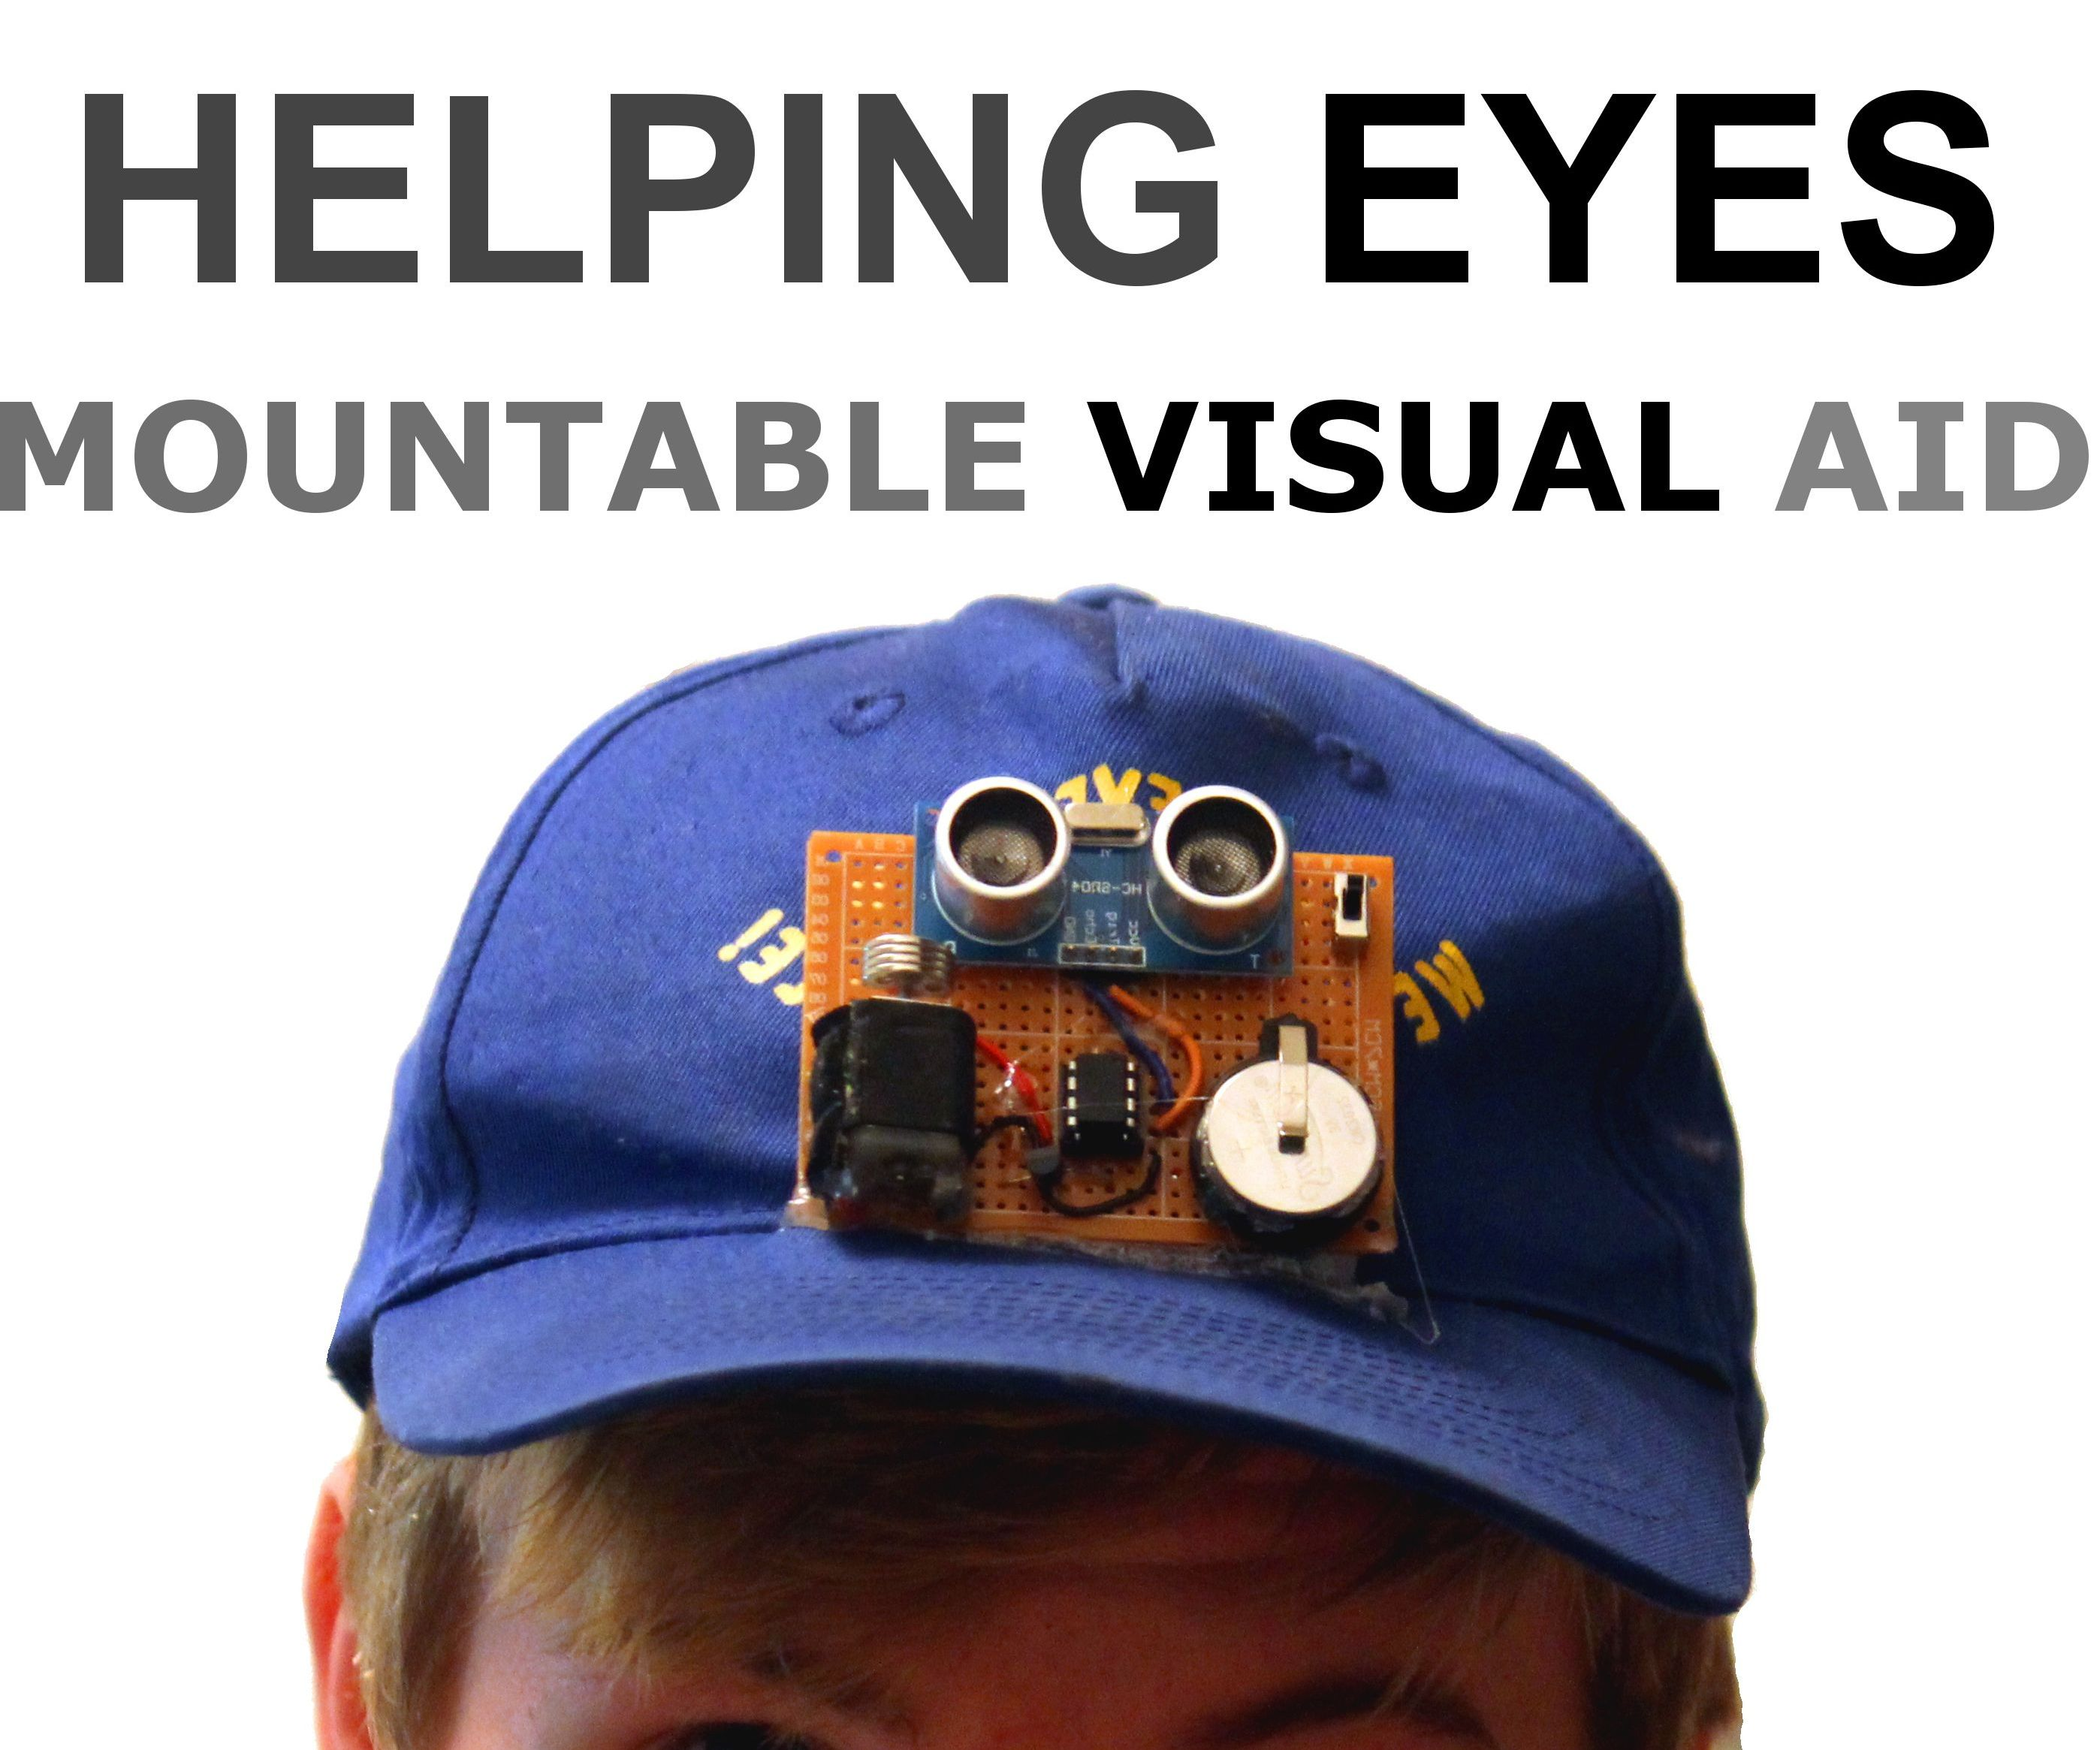 Helping Eyes (Mountable Visual Aid)